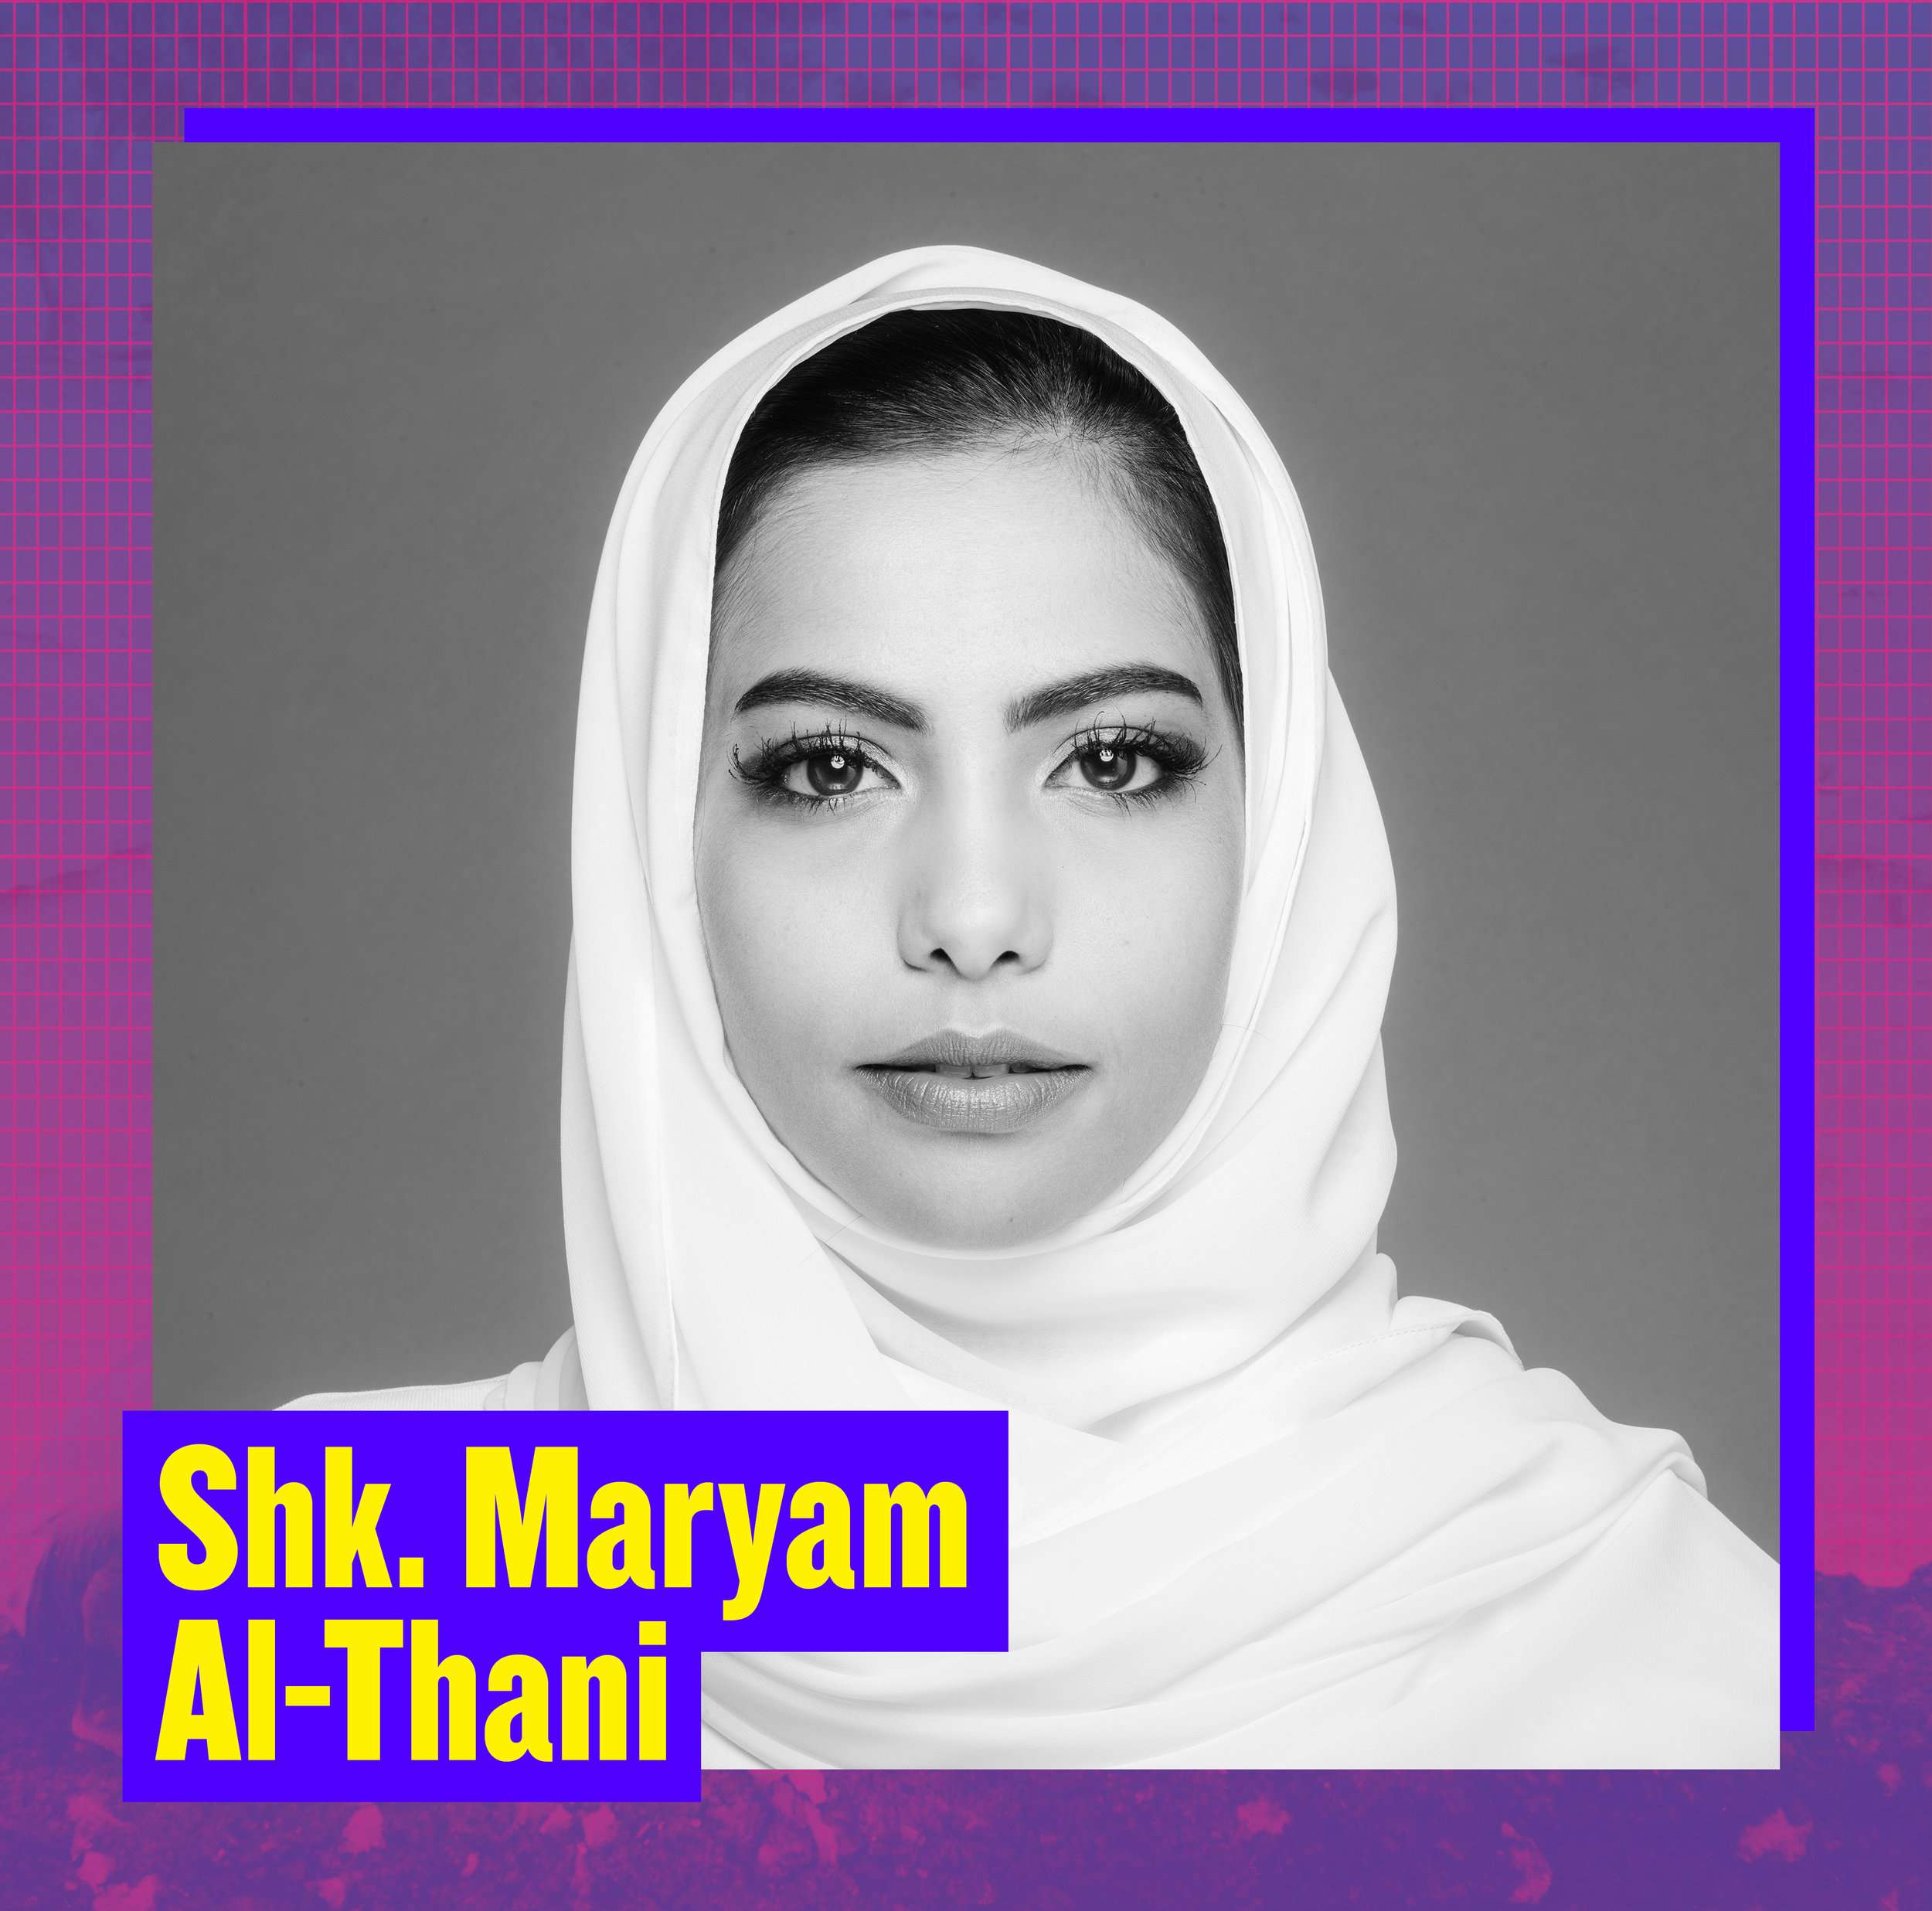 Shk. Maryam Al Thani.jpg